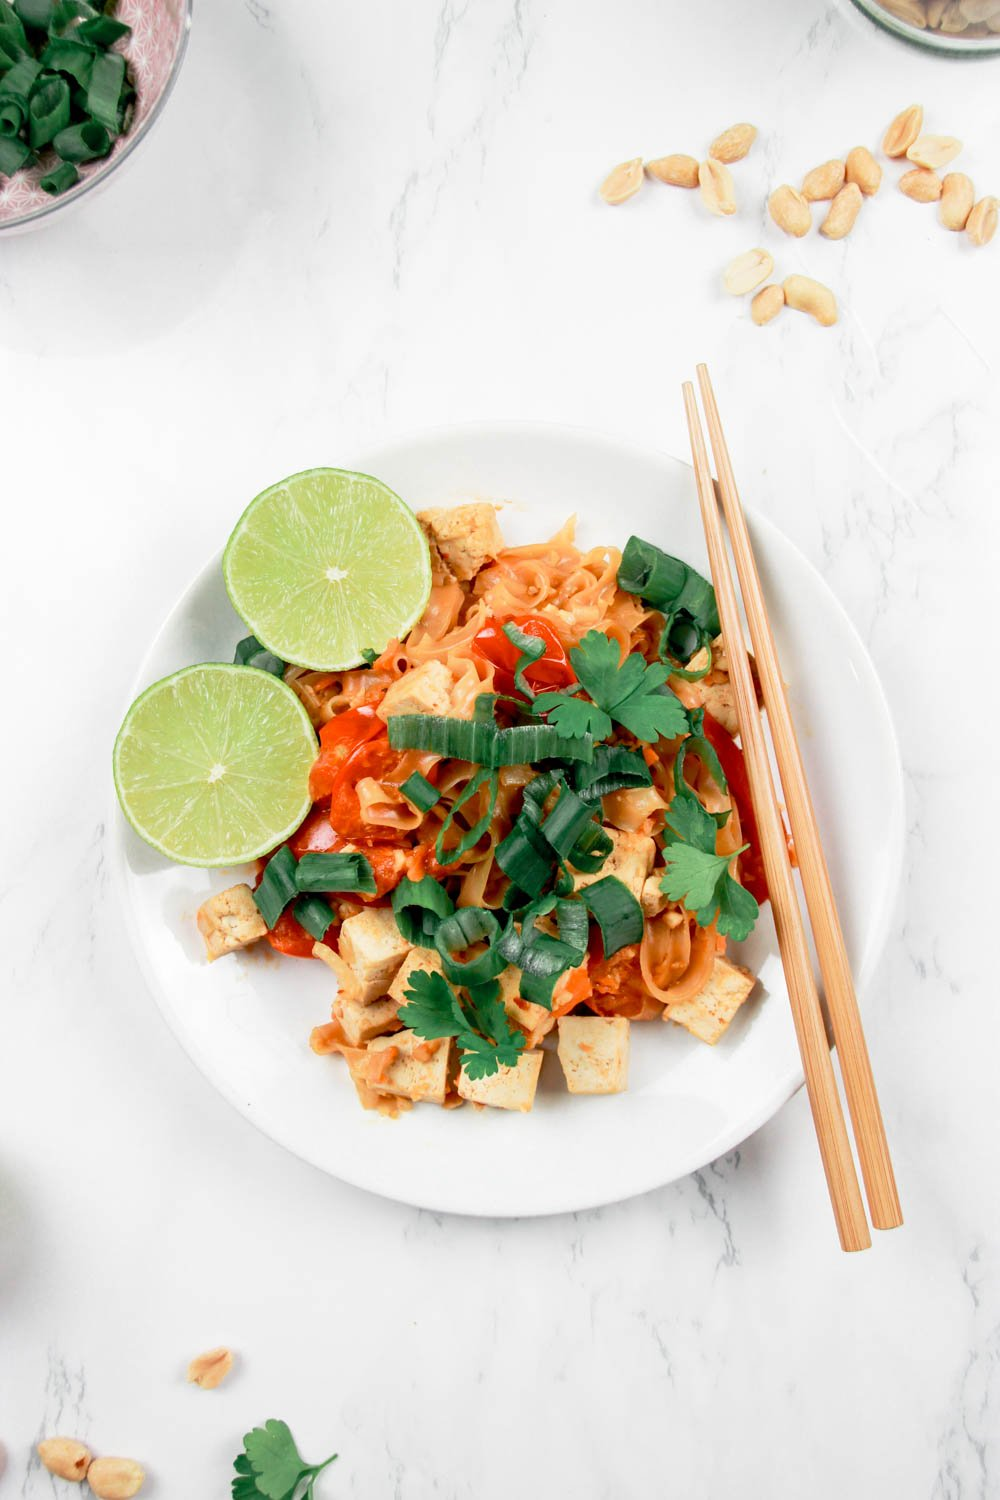 This picture shows the finished Authentic Vegan Pad Thai..